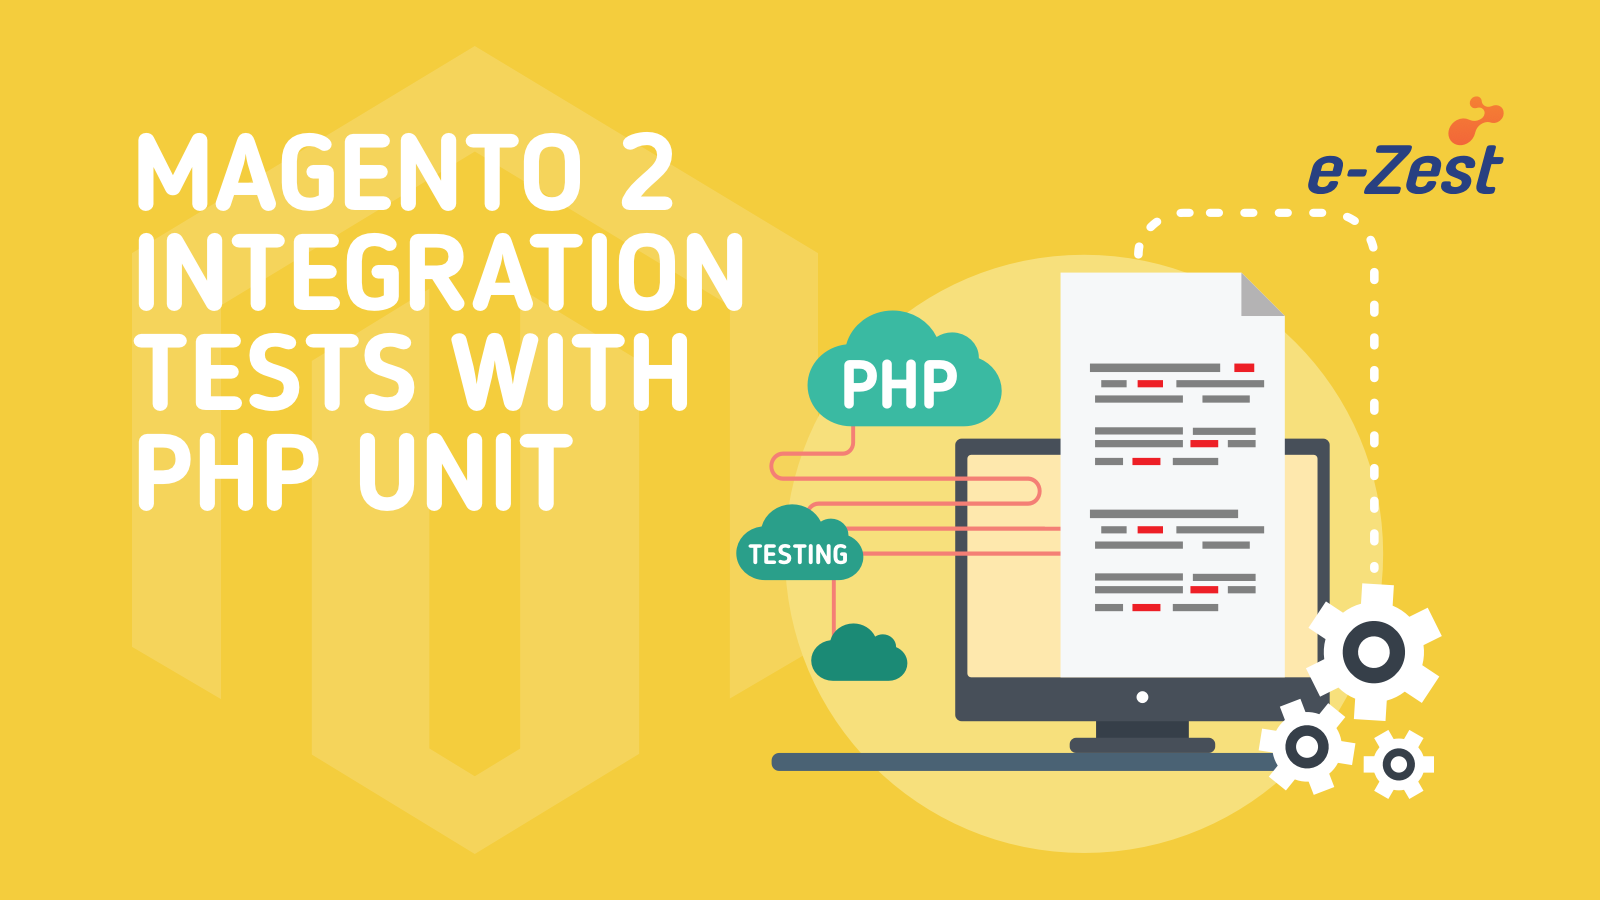 Magento 2- Integration tests with PHP unit